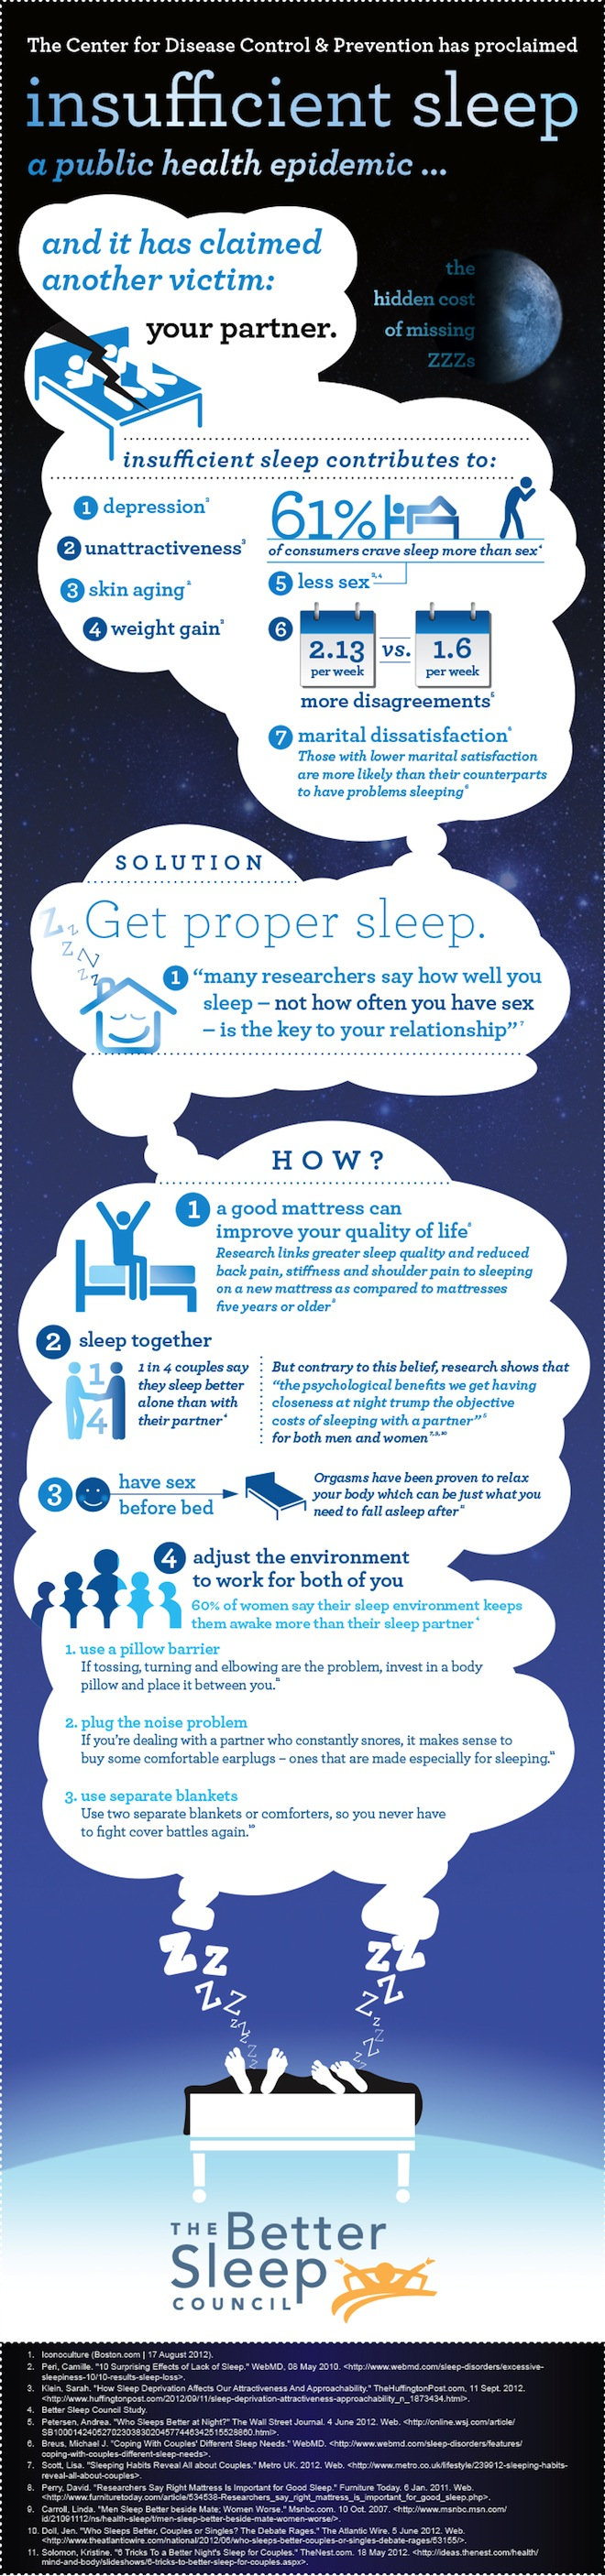 7 Side-Effects Of Insufficient Sleep Infographic